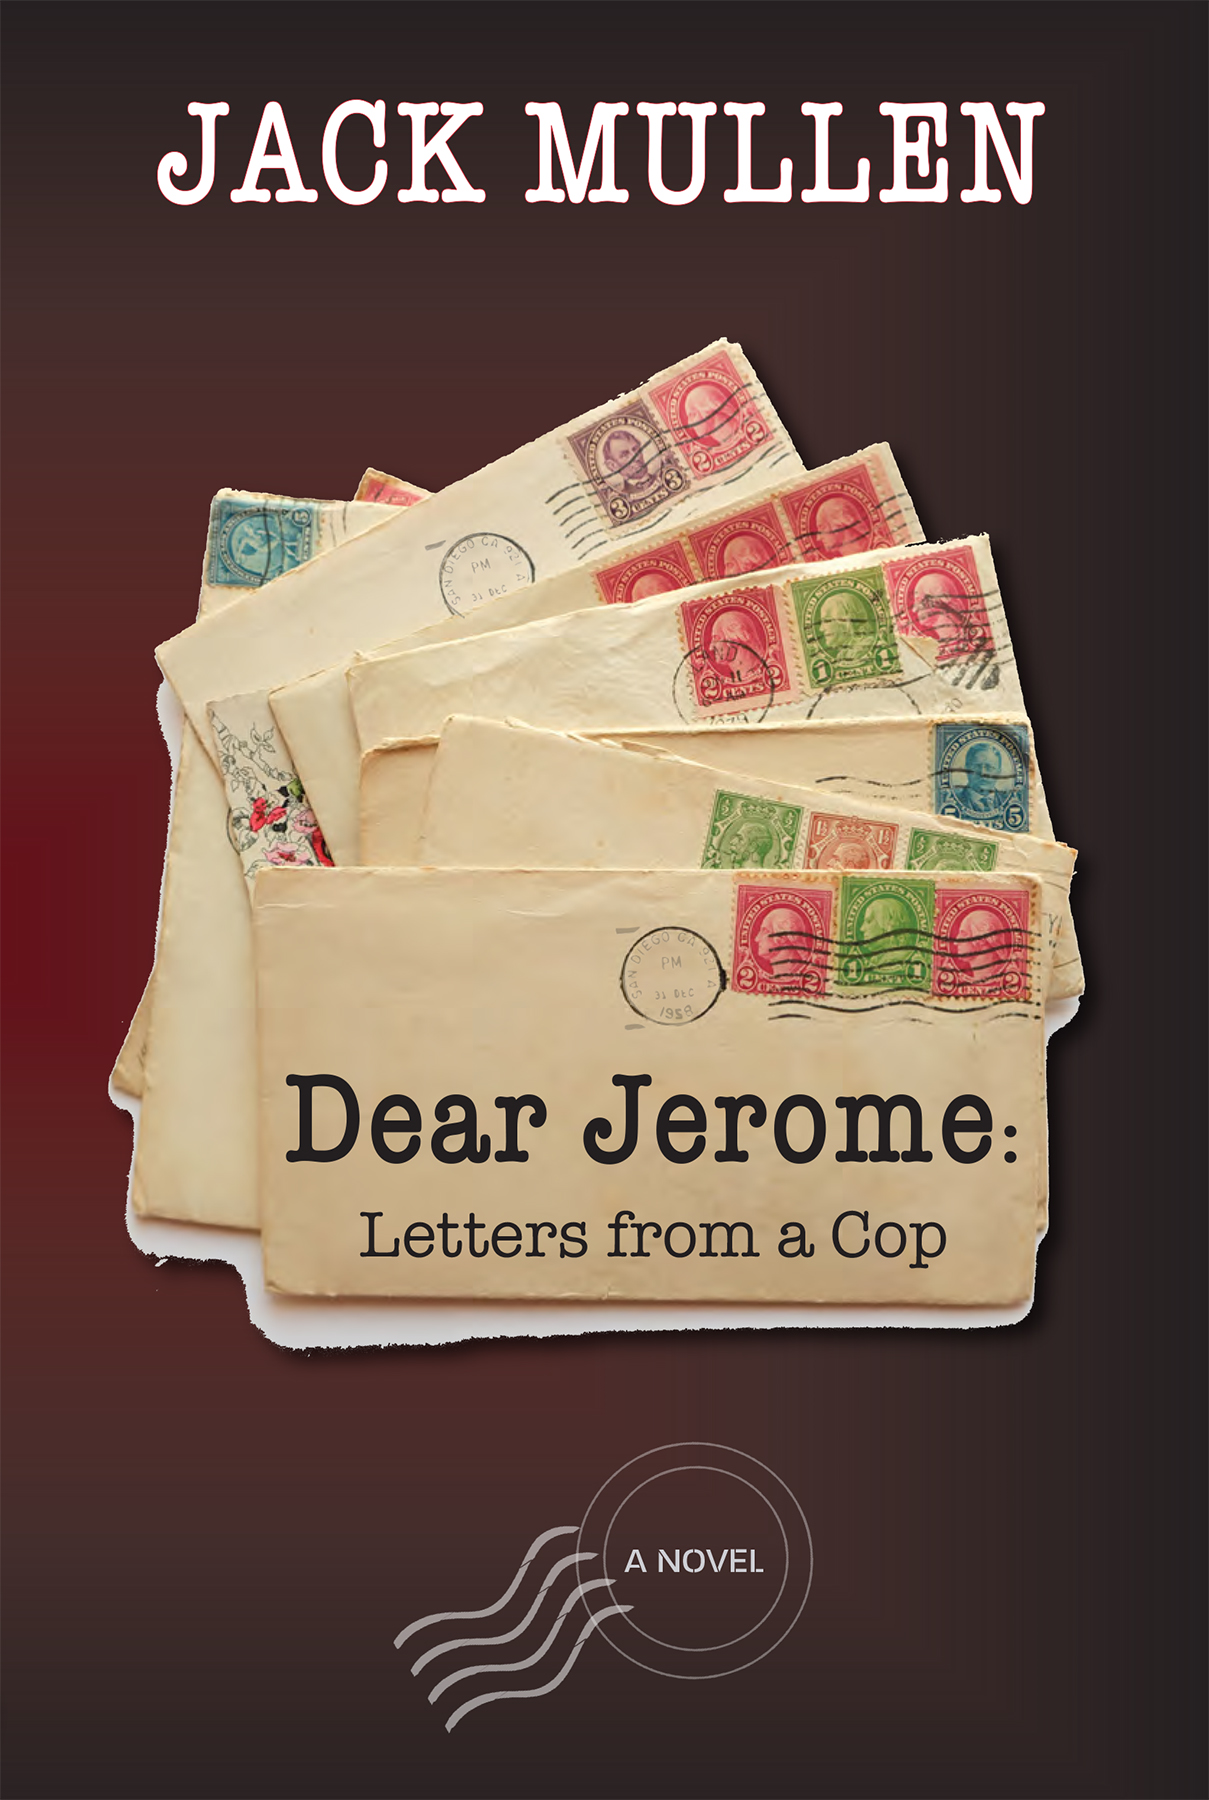 Dear Jerome: Letters from a Cop Image